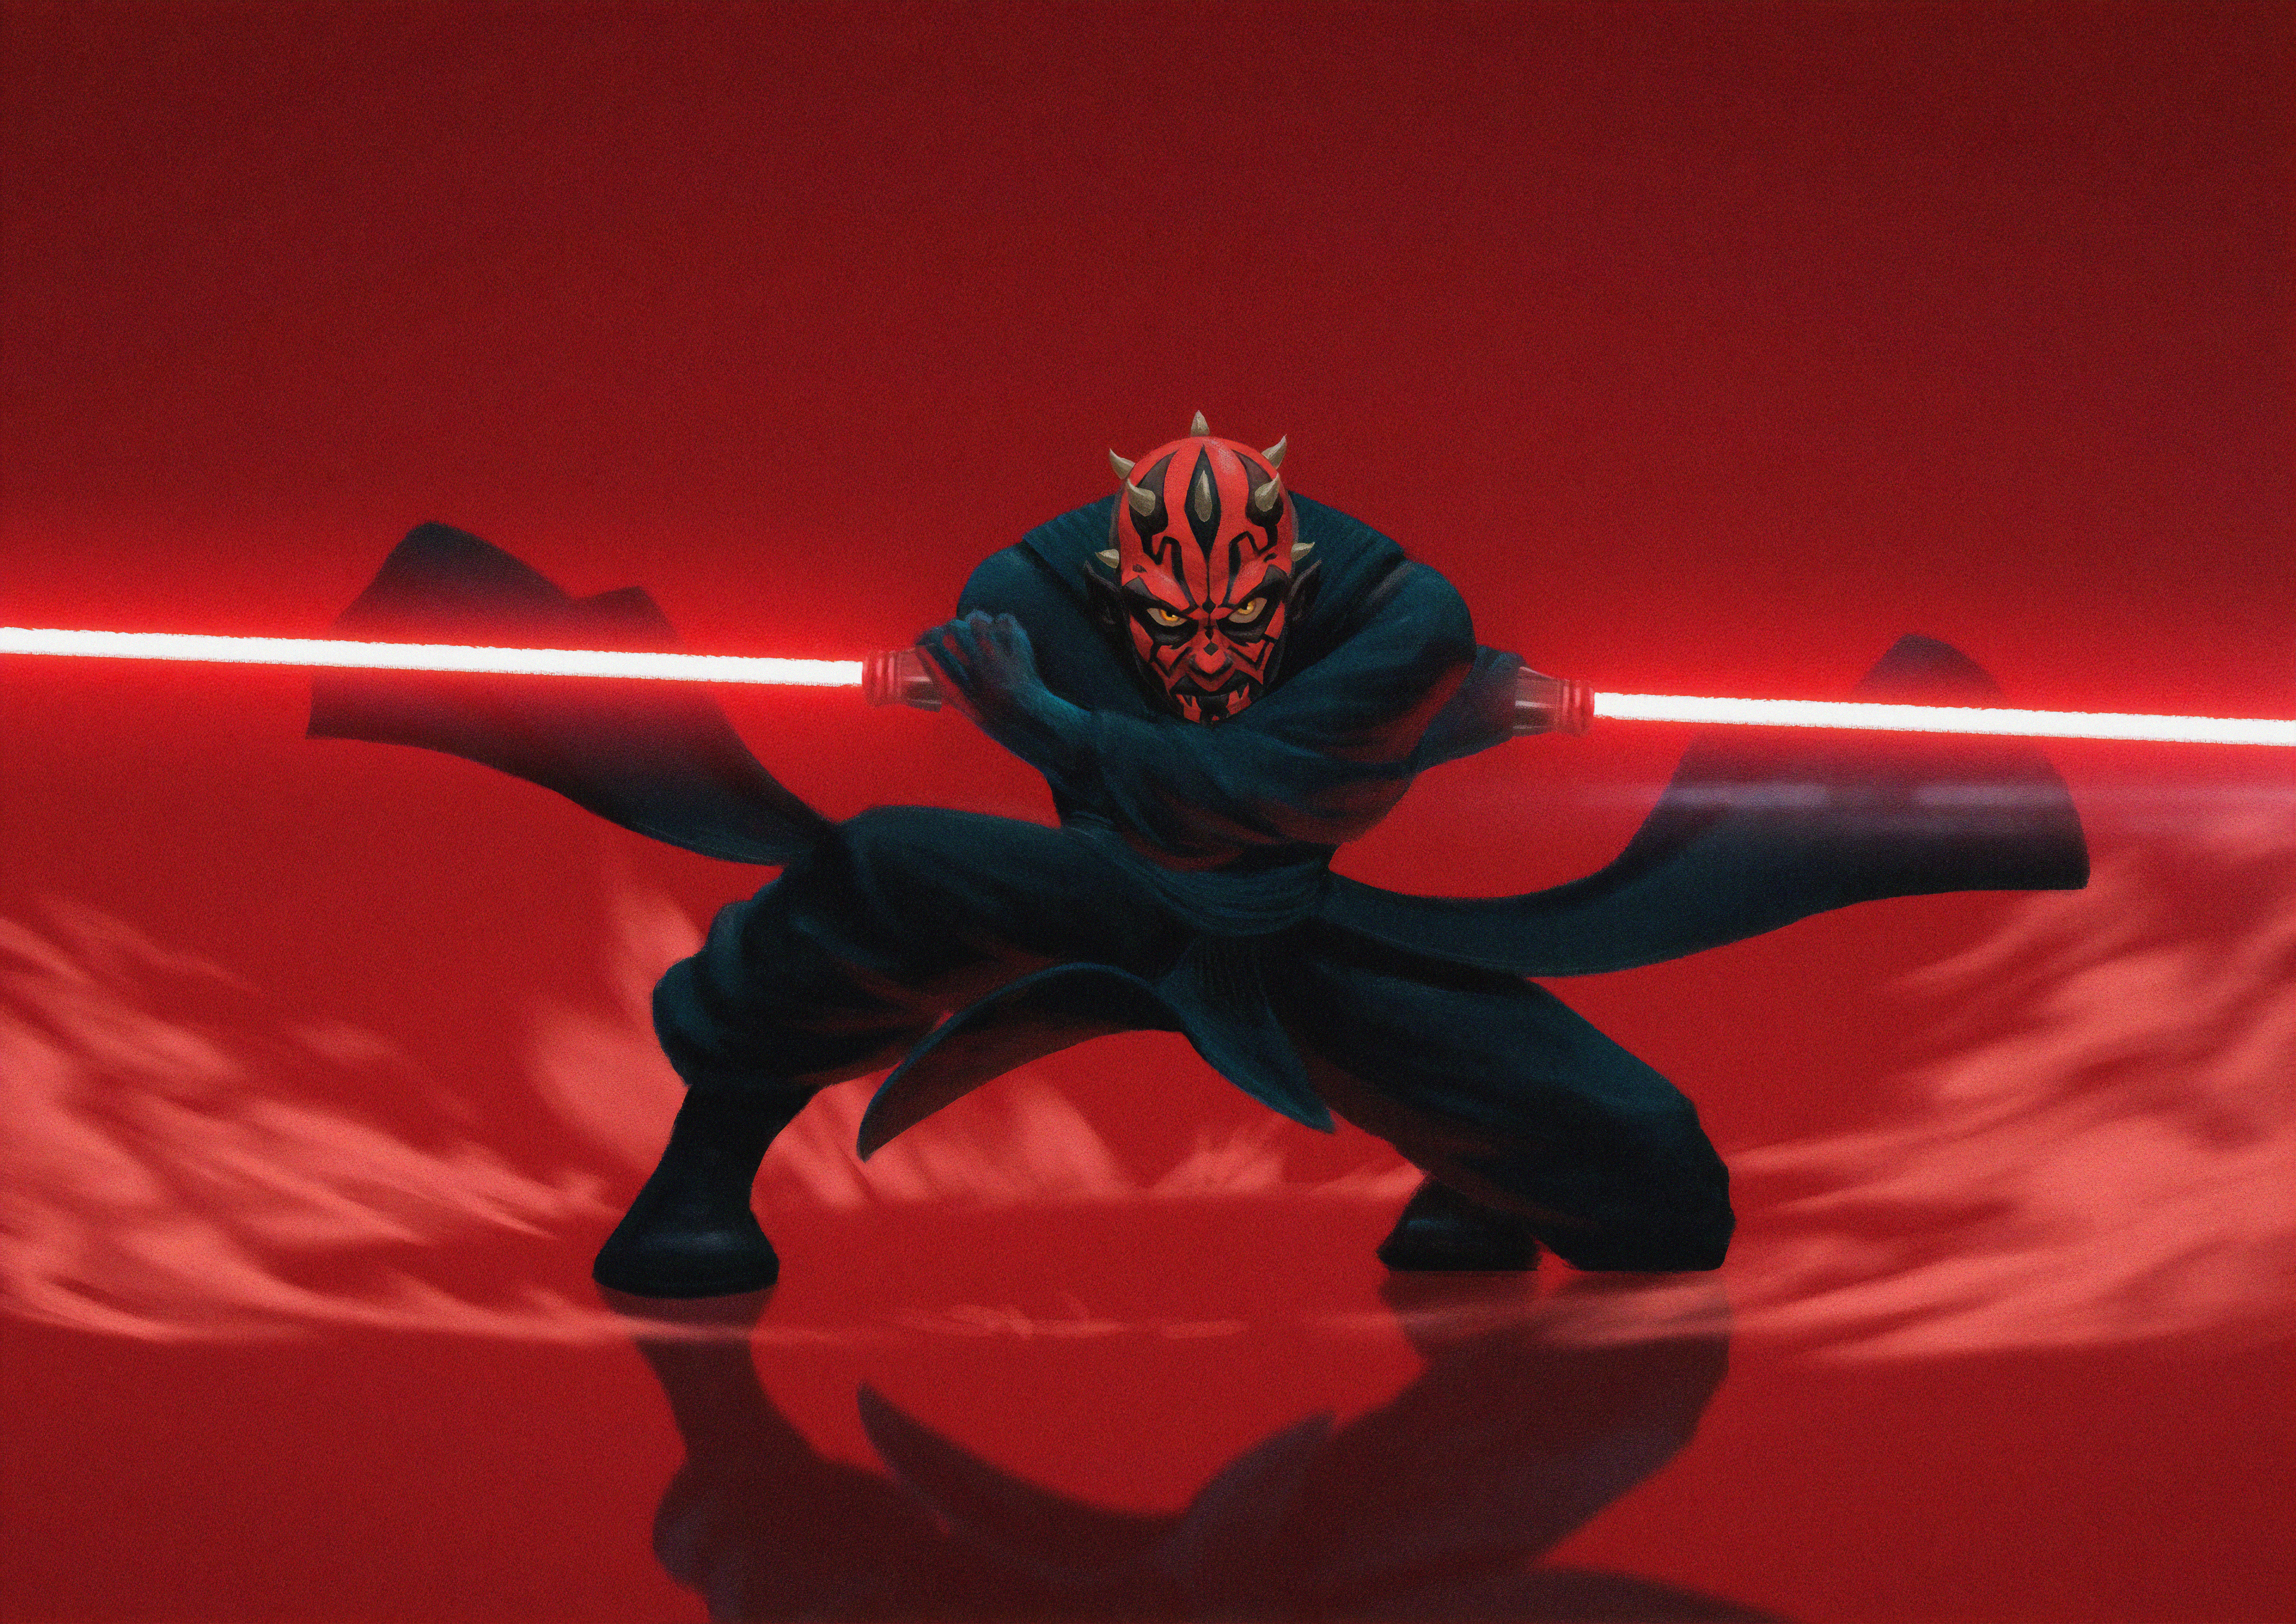 Darth Maul 4k Hd Artist 4k Wallpapers Images Backgrounds Photos And Pictures